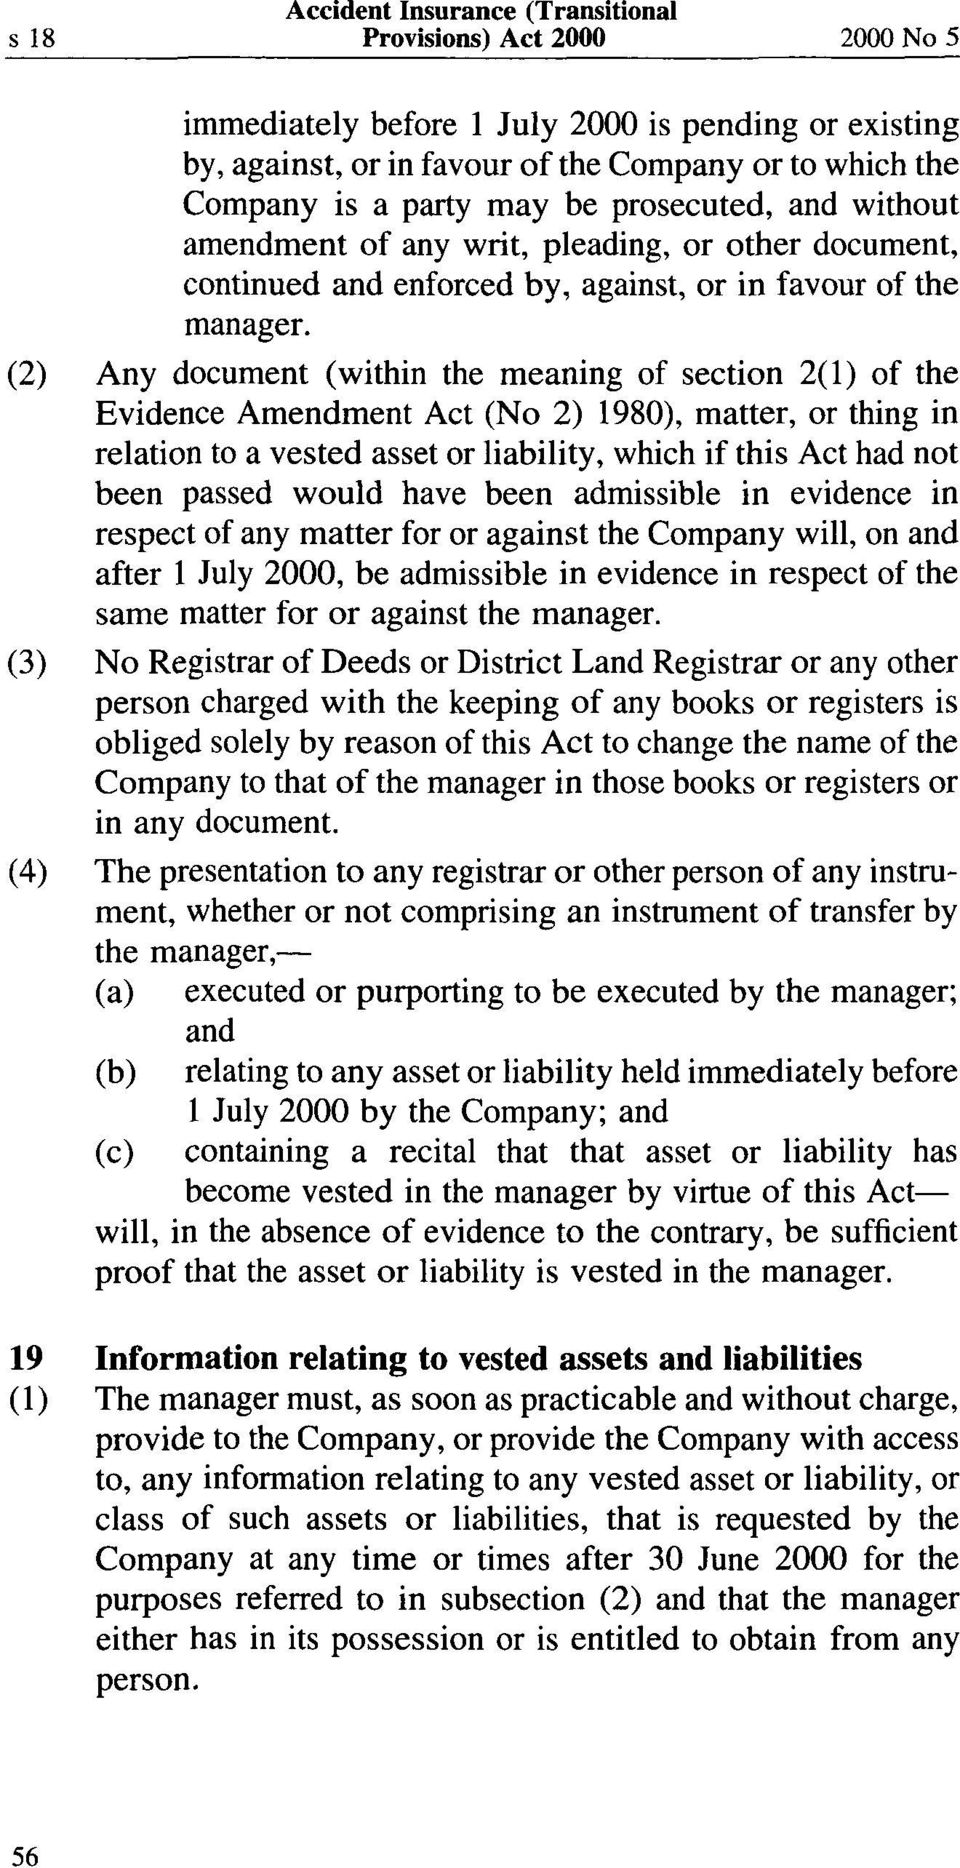 (2) Any document (within the meaning of section 2(1) of the Evidence Amendment Act (No 2) 1980), matter, or thing in relation to a vested asset or liability, which if this Act had not been passed